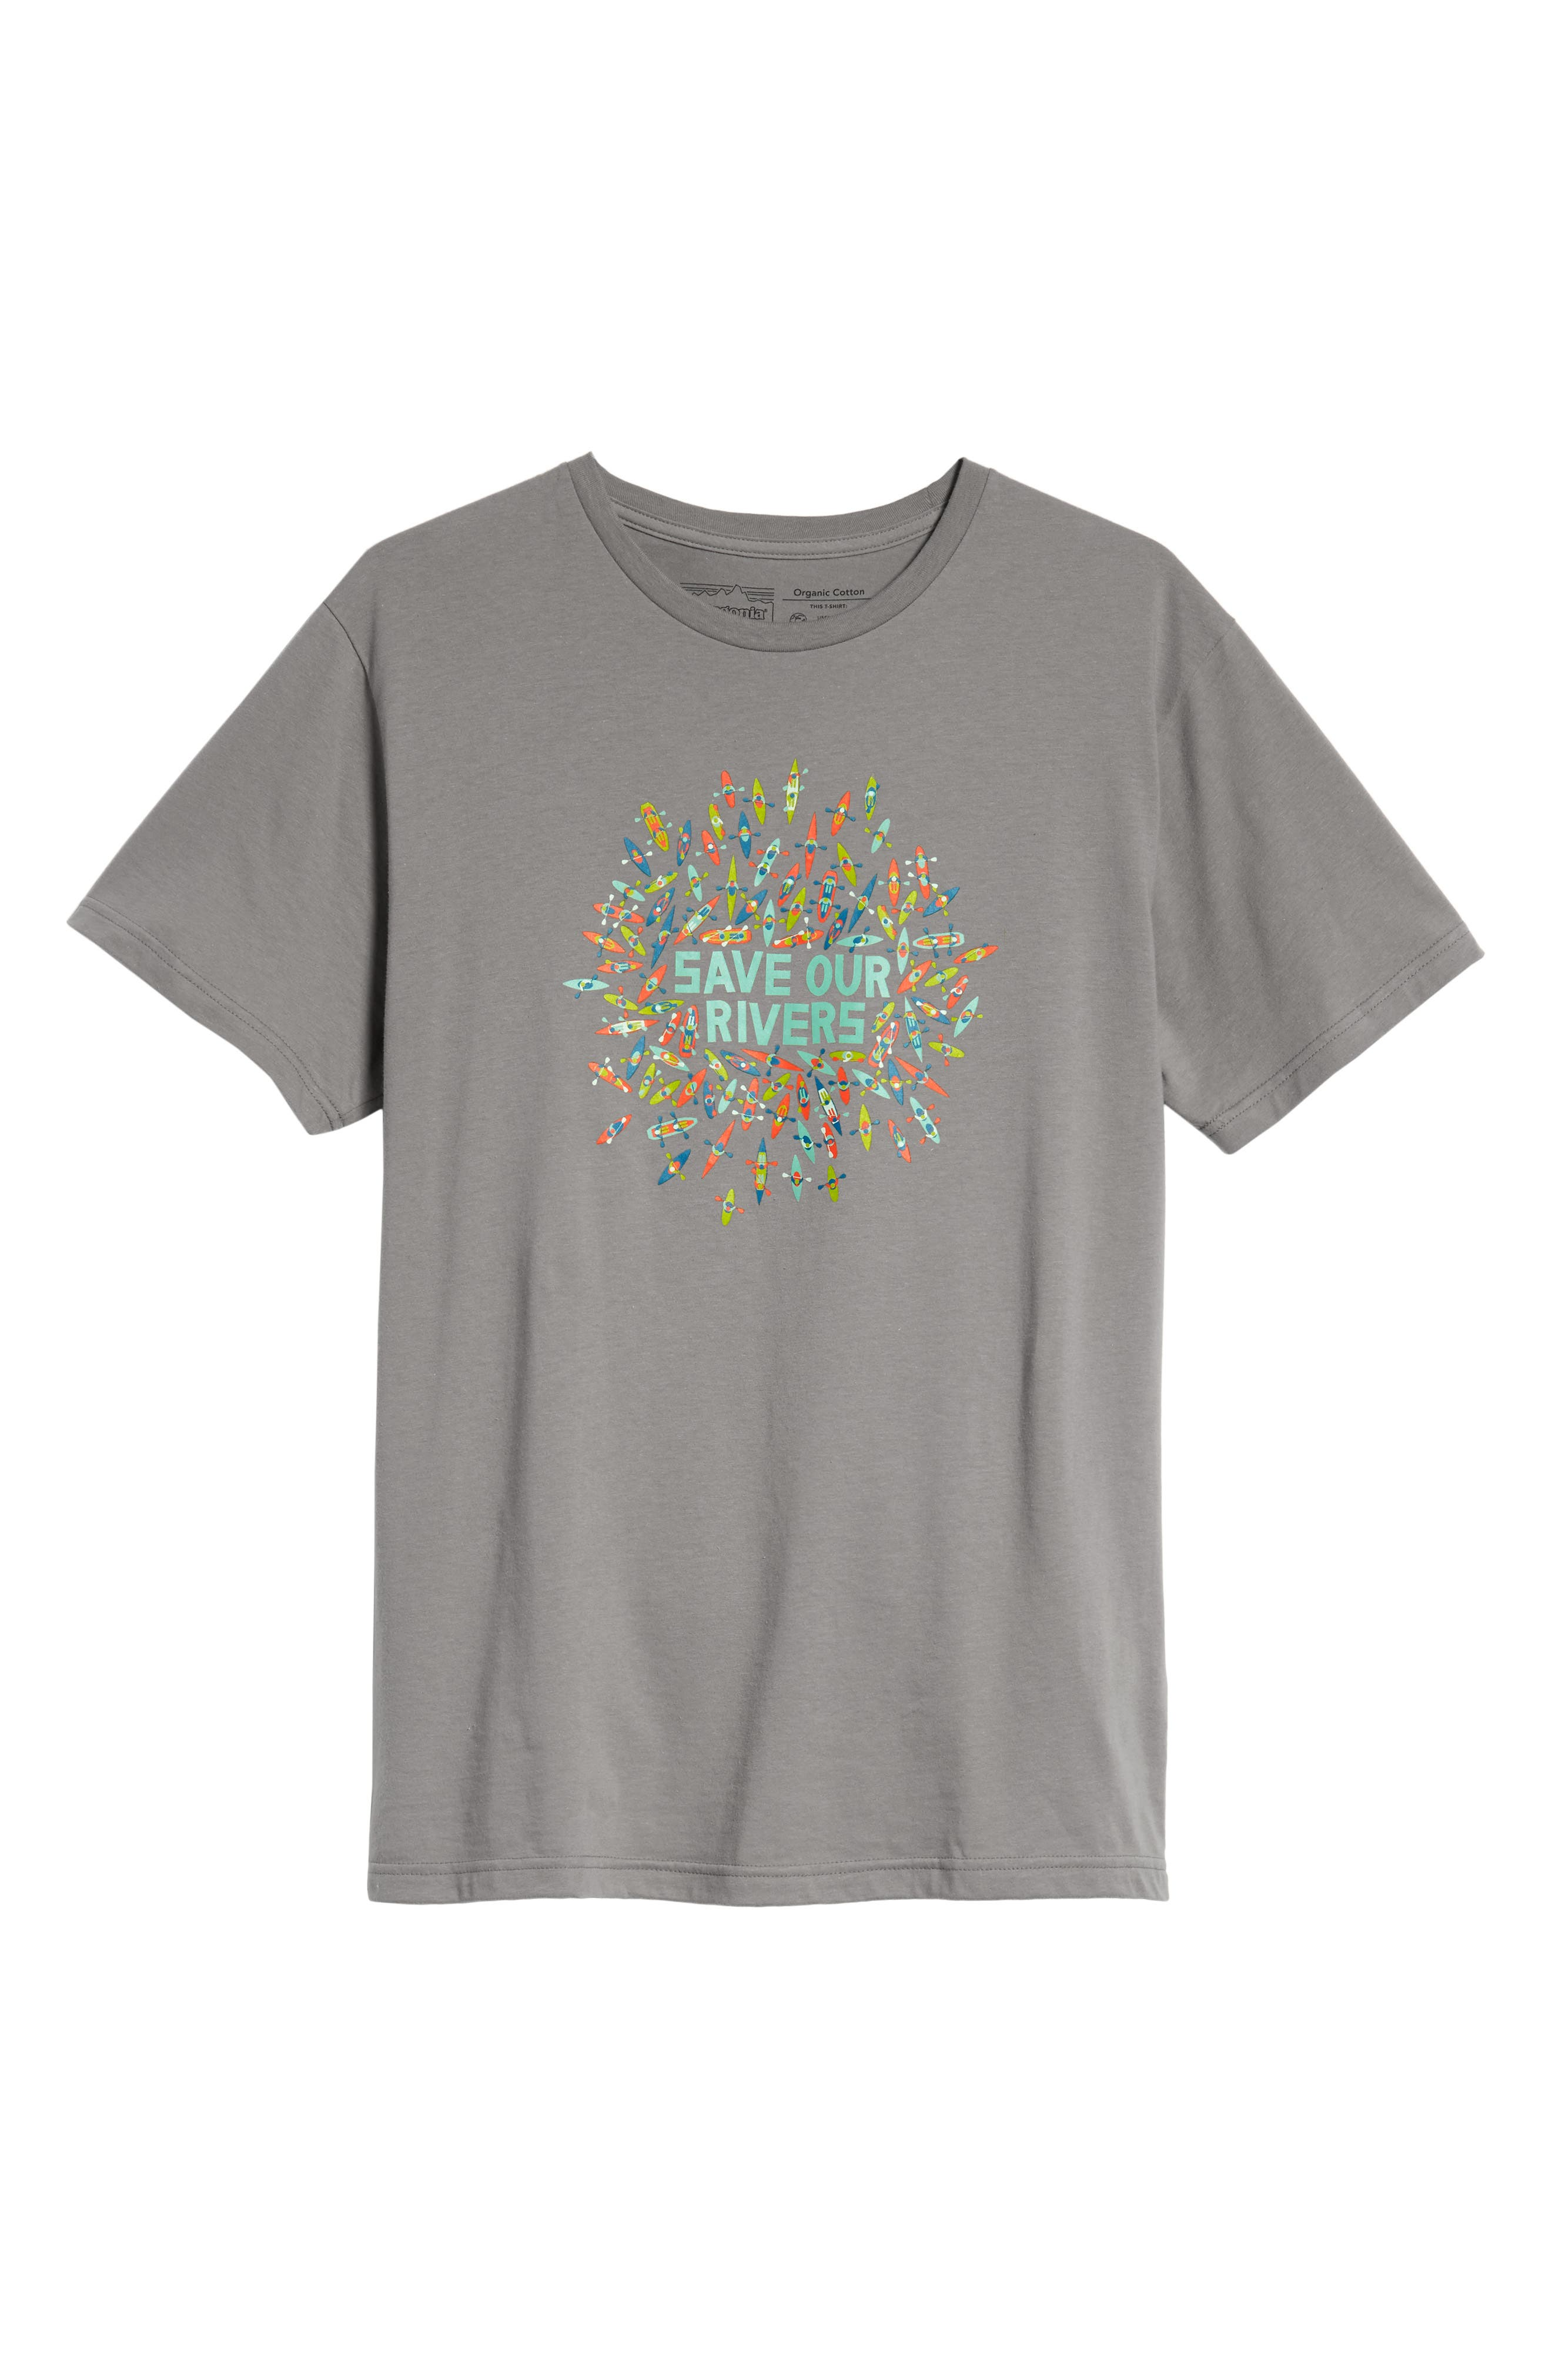 Save Our Rivers Organic Cotton Graphic T-Shirt,                             Alternate thumbnail 6, color,                             FEATHER GREY